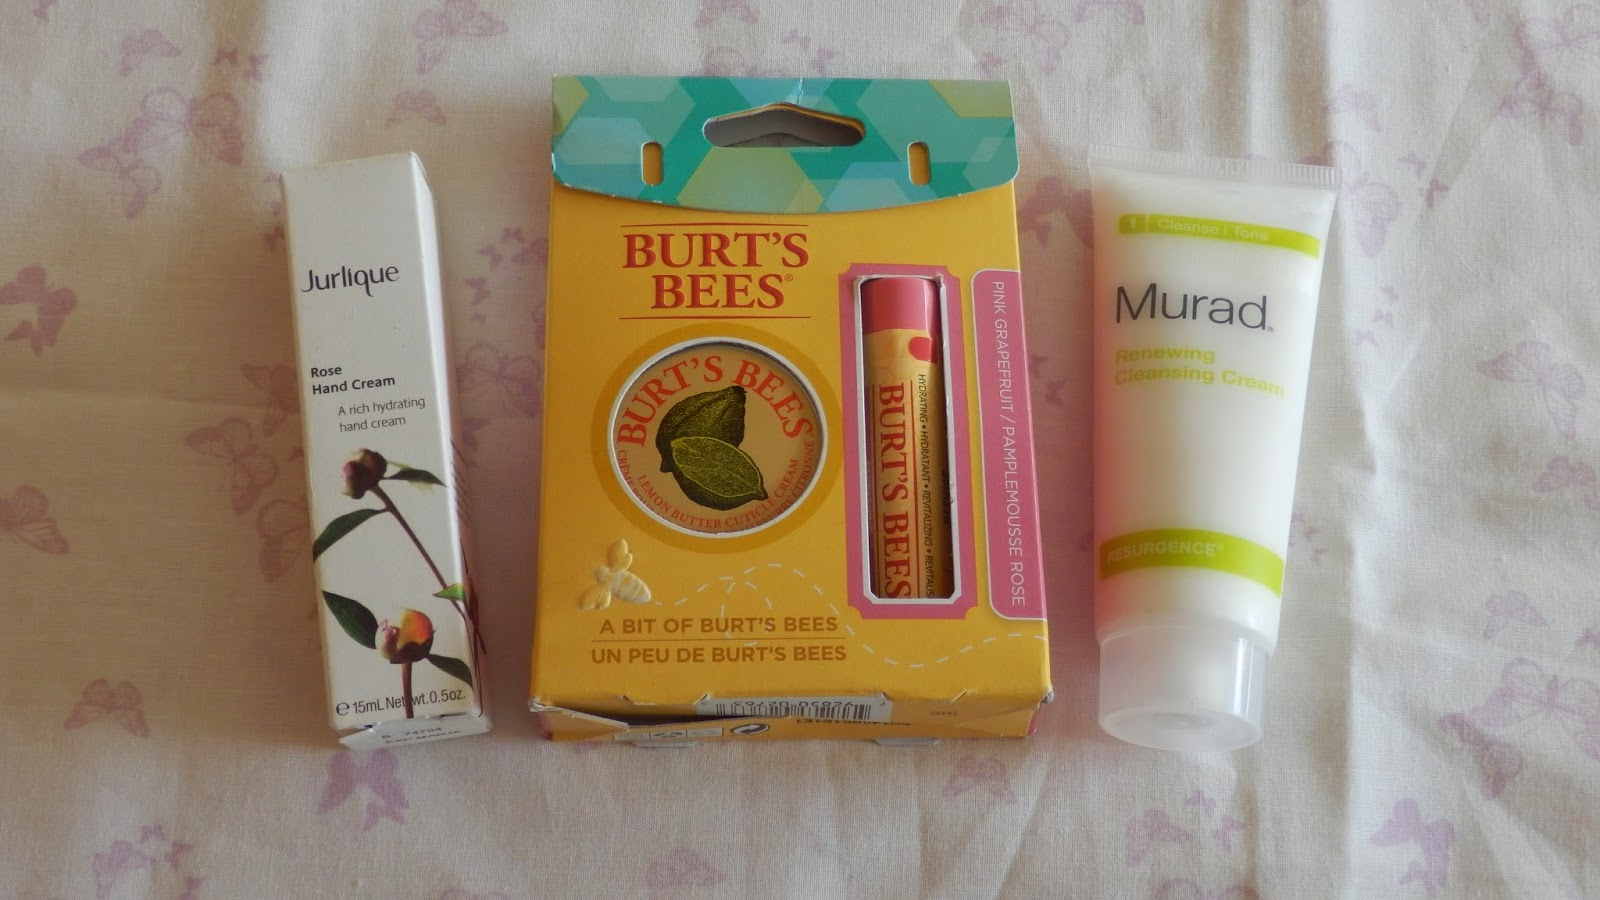 2 Year Blogiversary Giveaway win Jurlique Rose Hand Cream, Murad Renewing Cleansing Cream and Burt's Bees A Bit of Burt's Bees Set